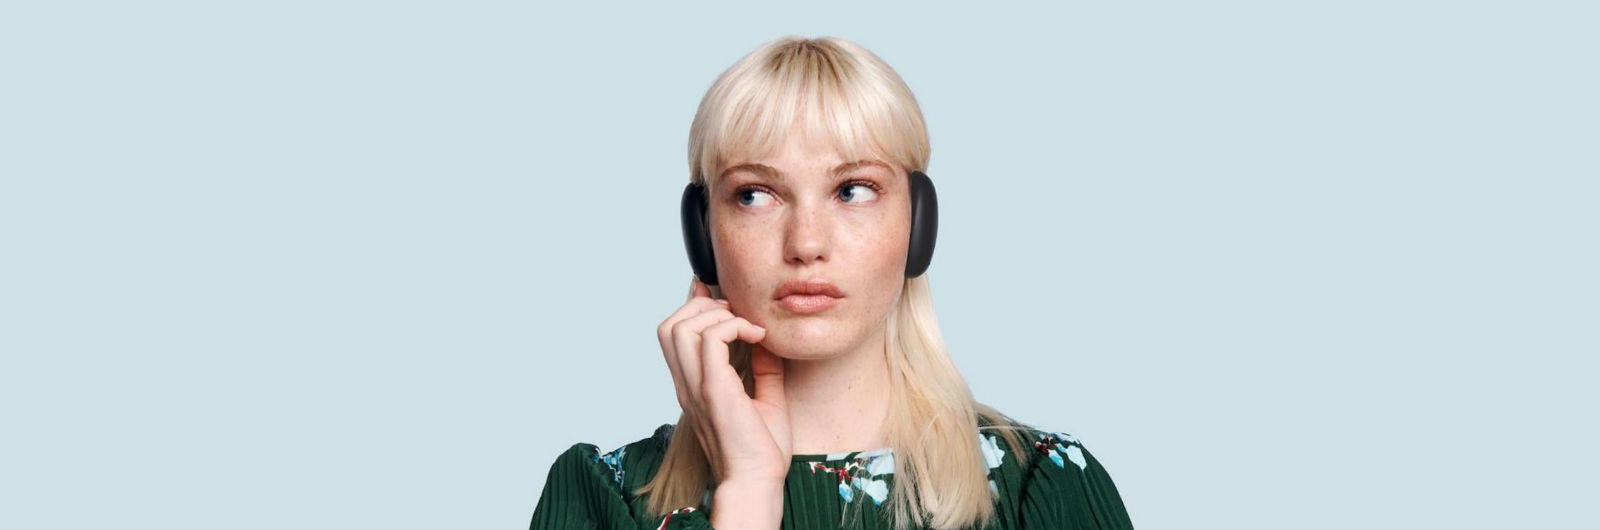 A New Advent in Headphones Technology